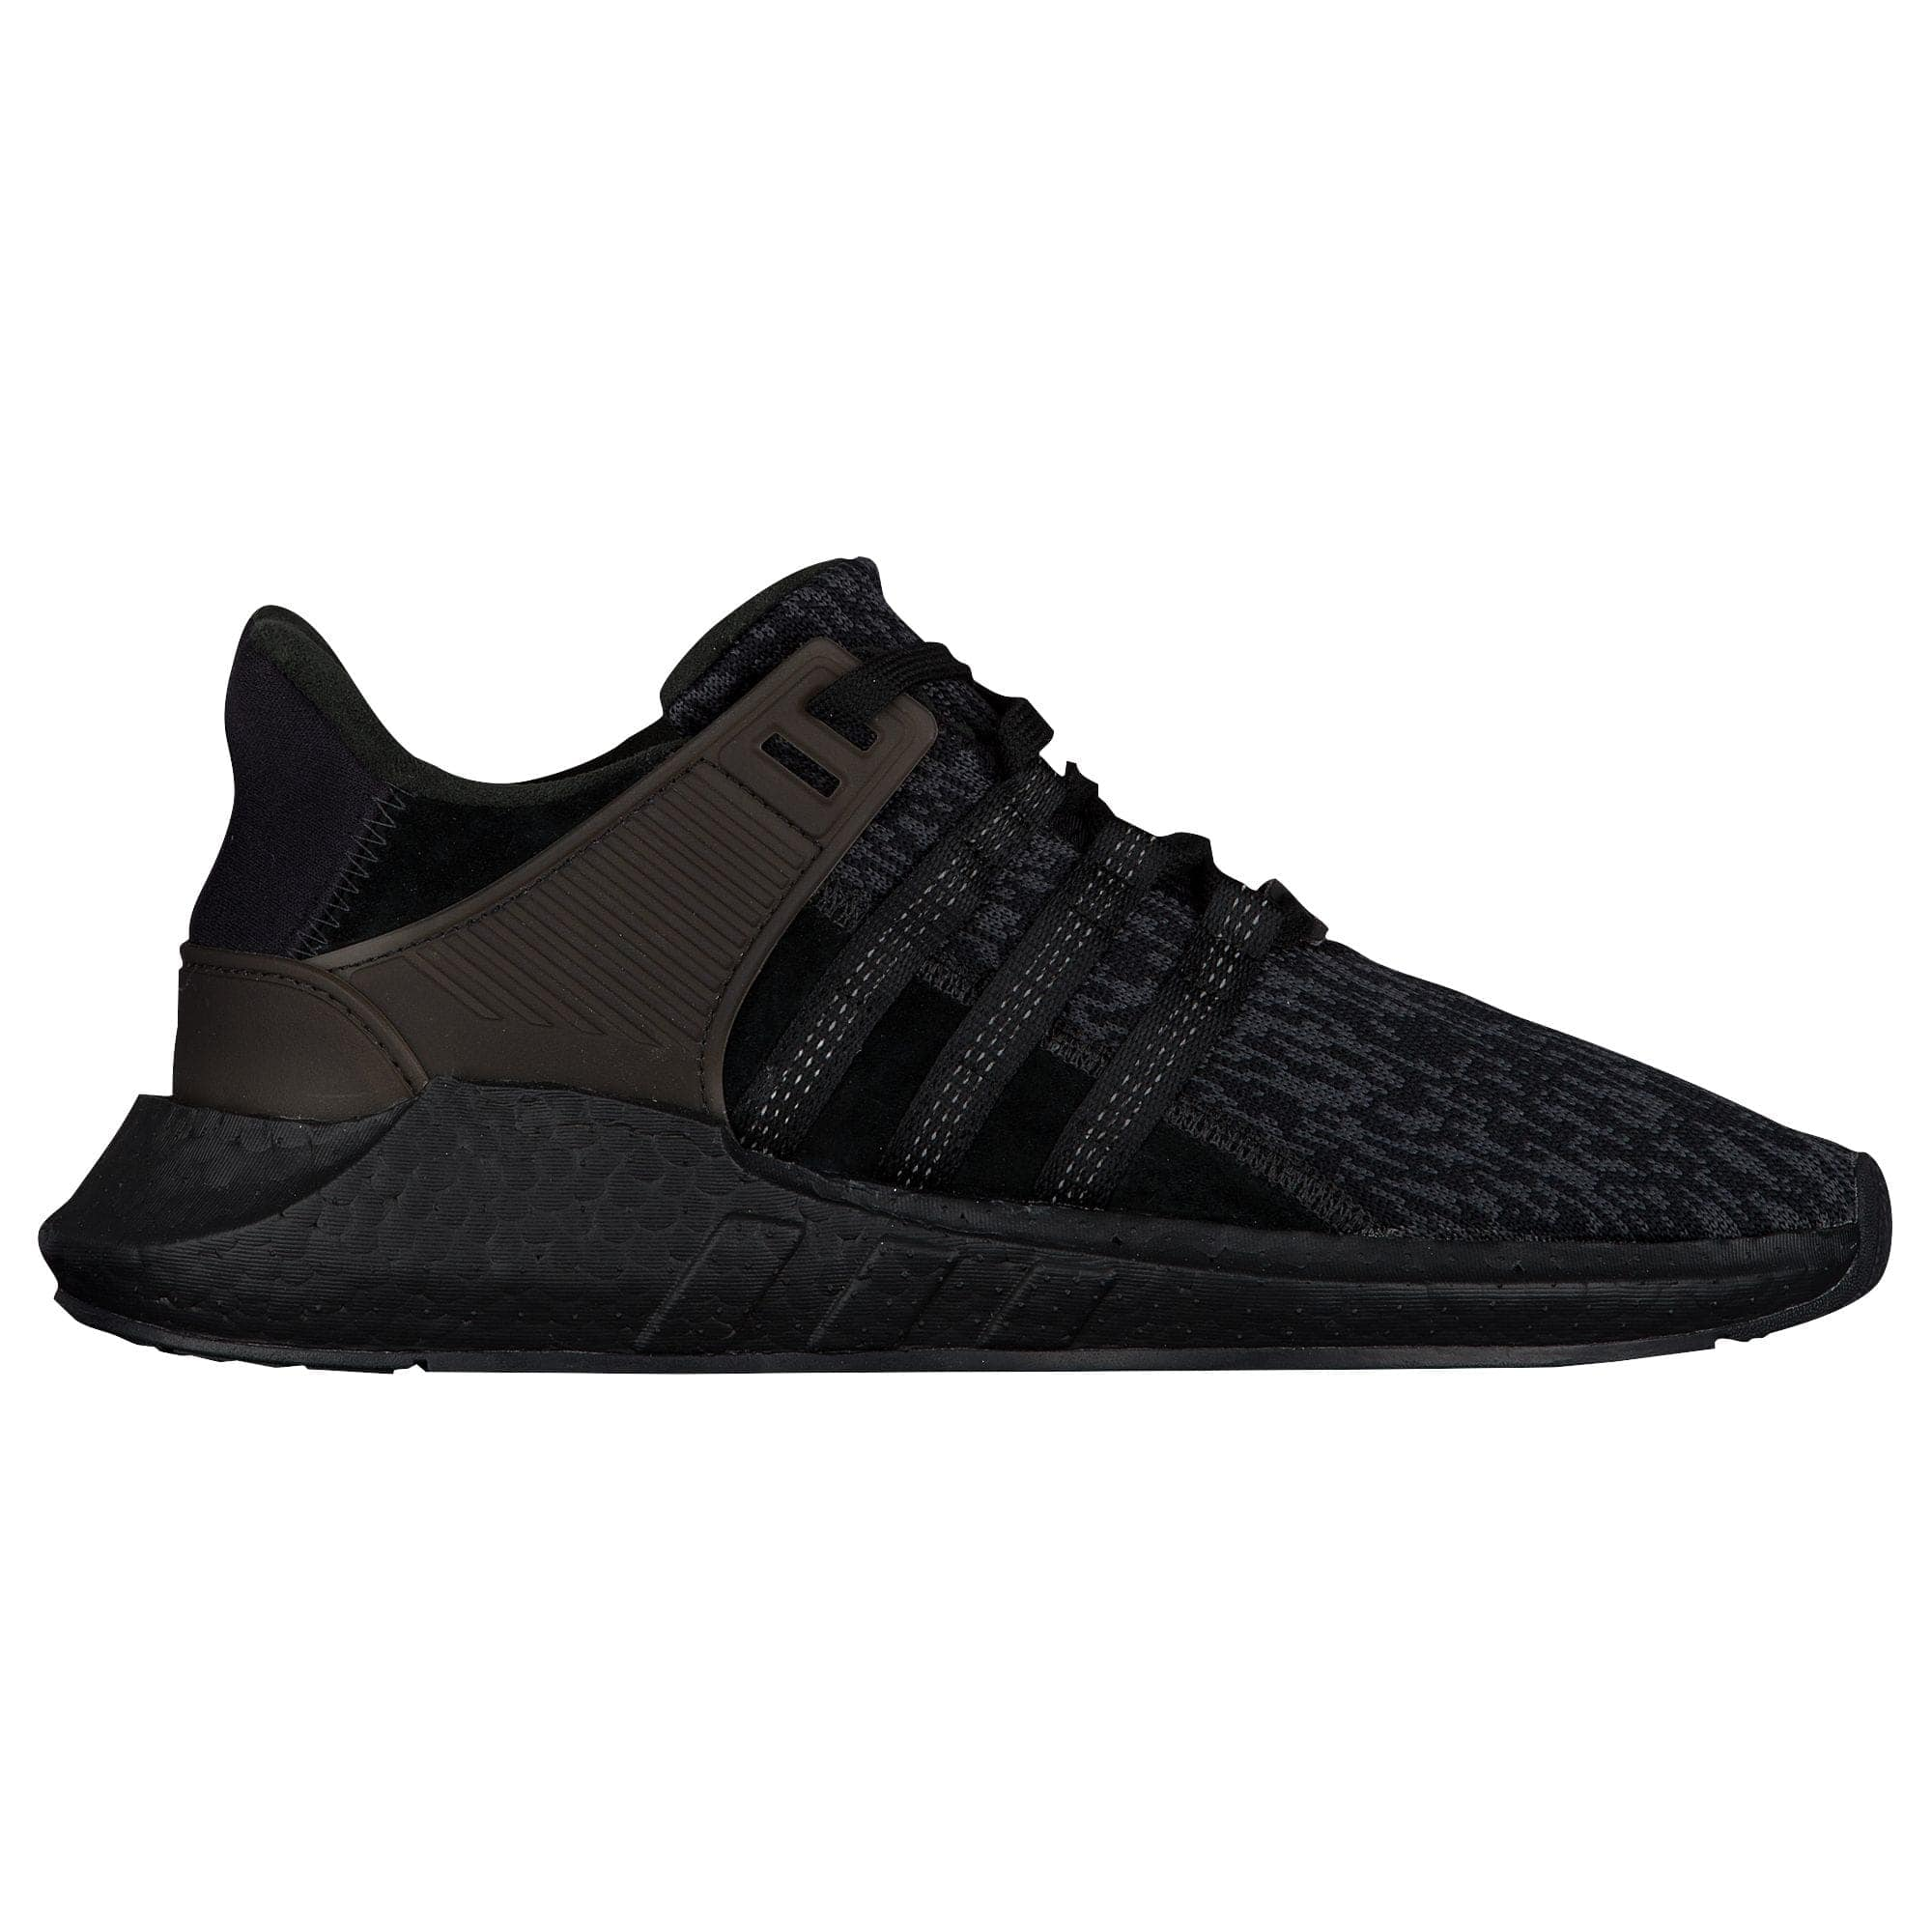 4e304b29c50507 adidas Originals Men s Eqt Support 93 17 Boost Shoes Triple Black  79.99 -  Pick up only YMMV